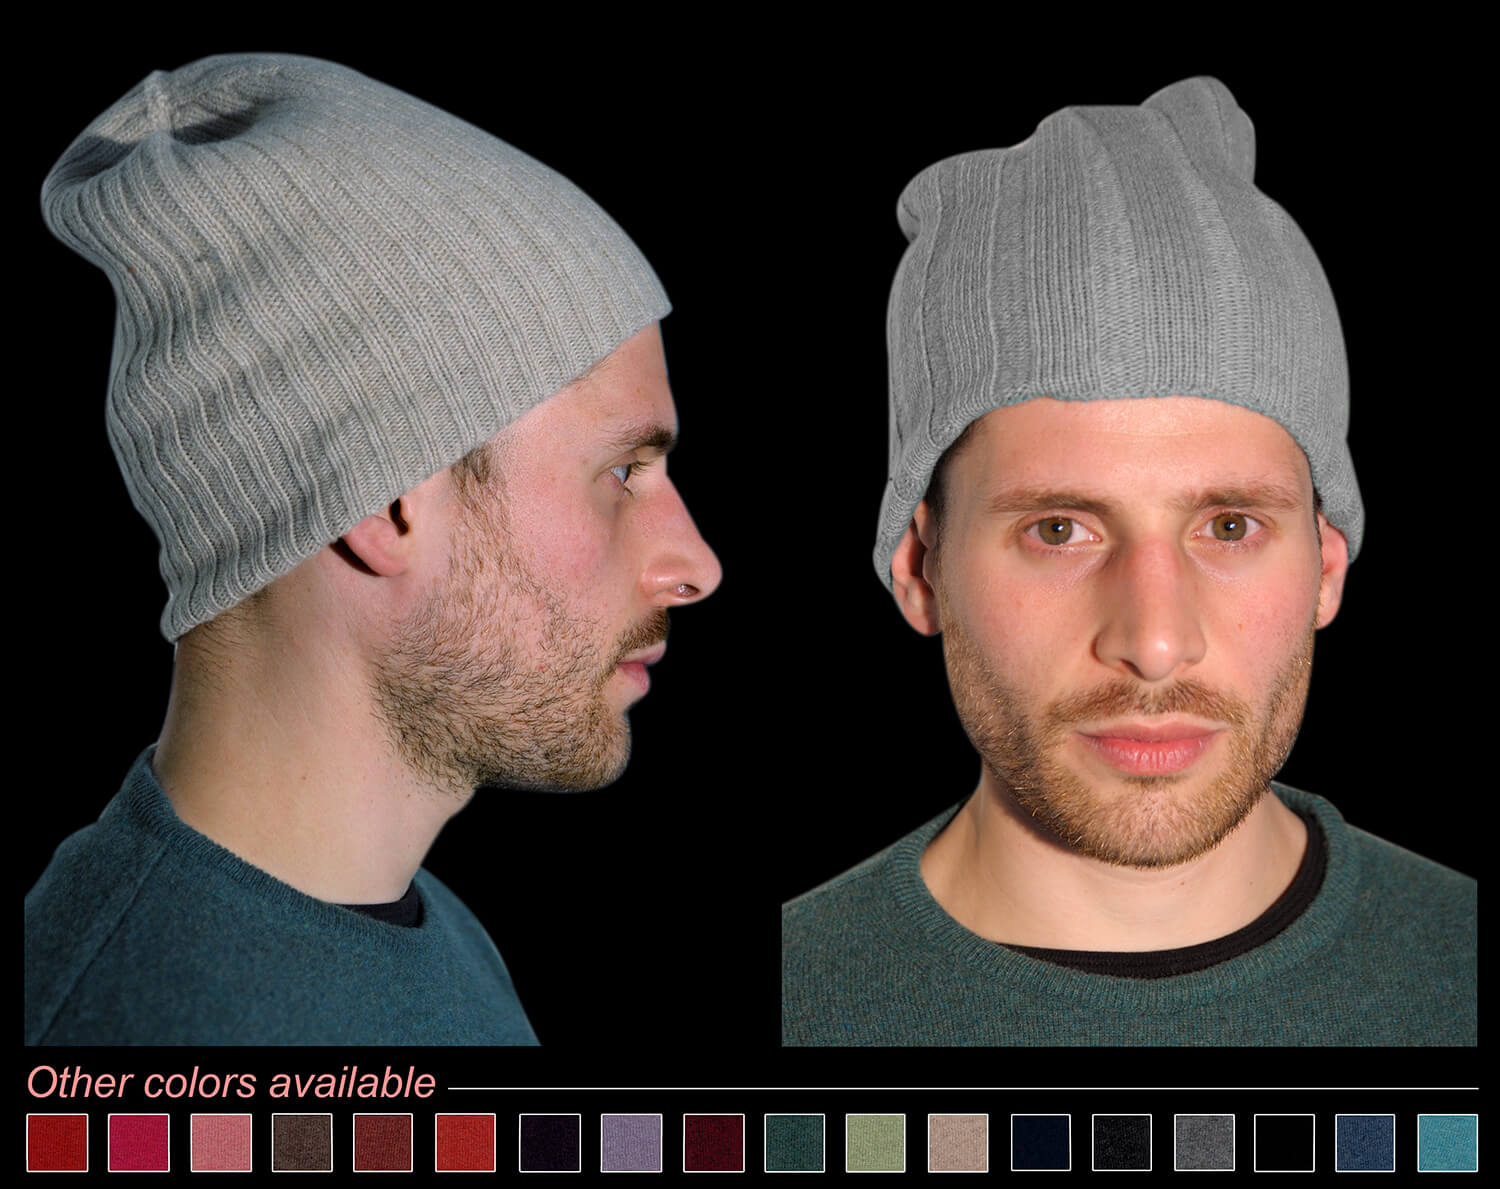 Man hat color grey code 119 and 298